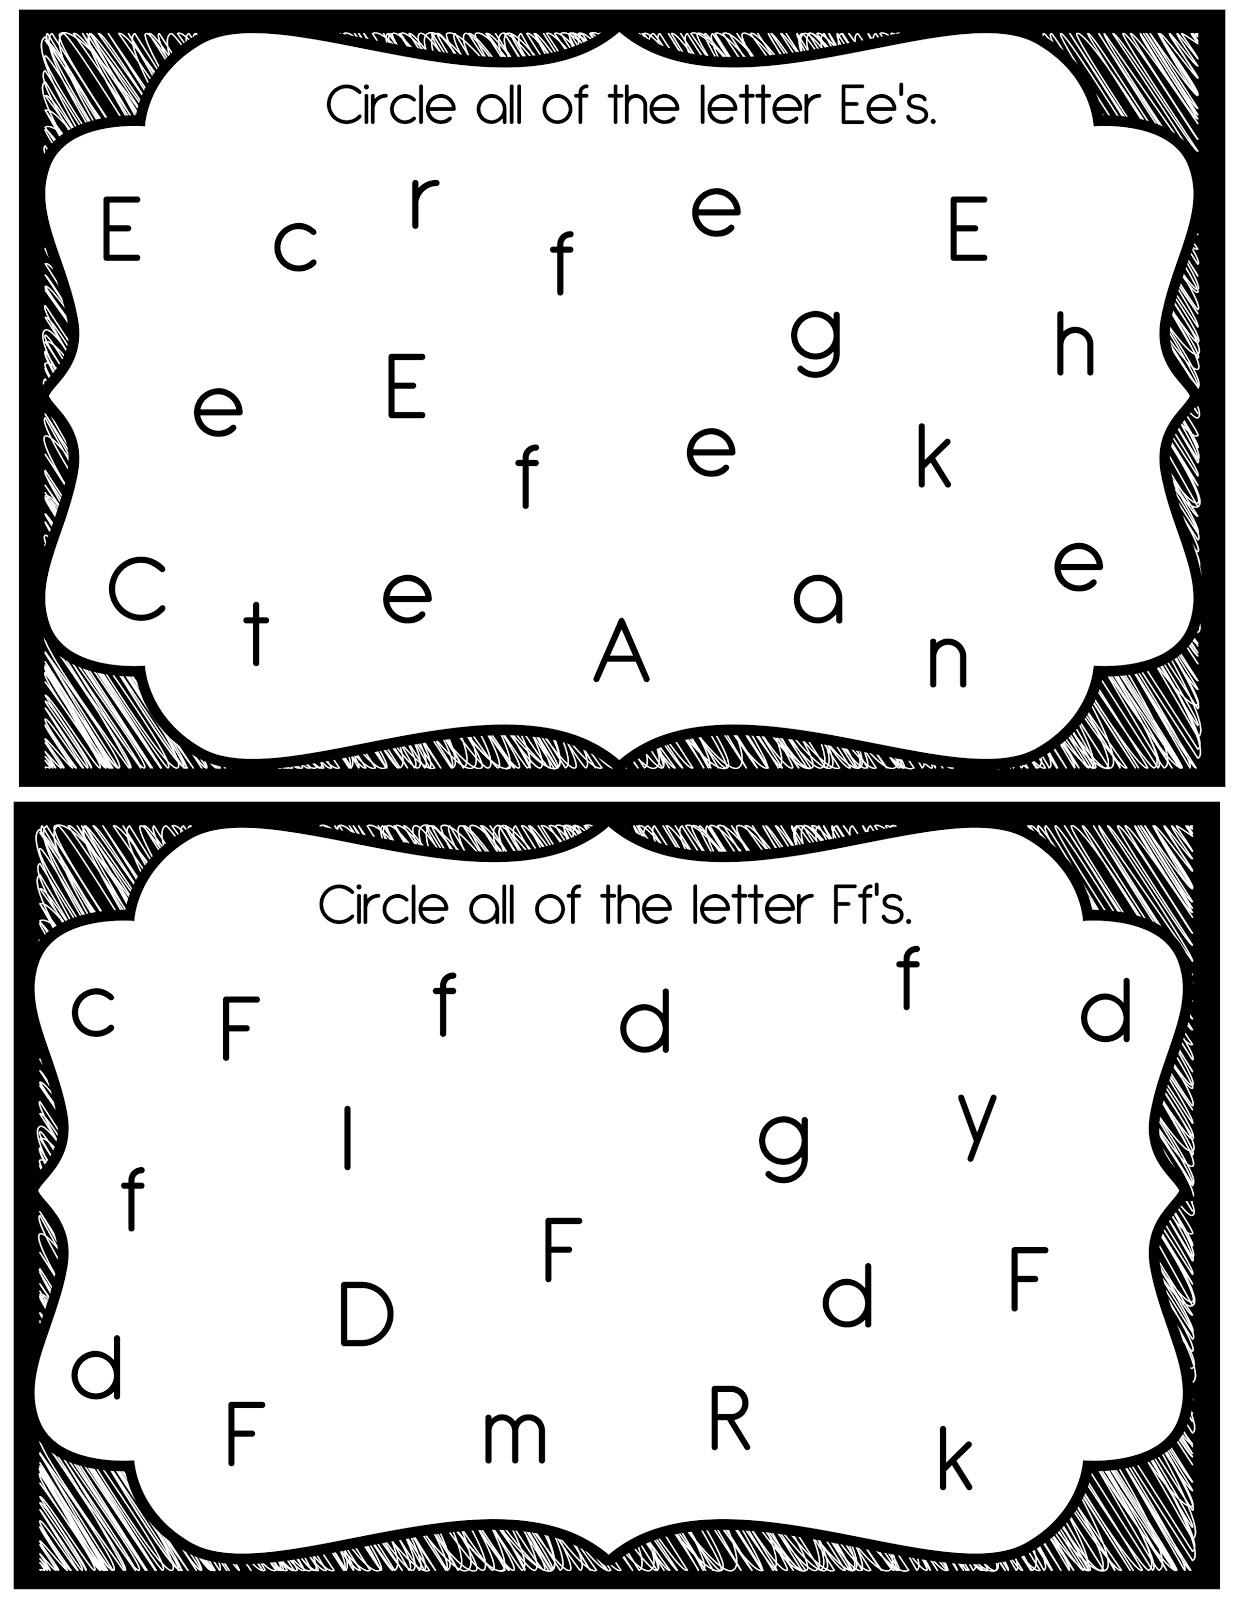 The Crazy PreK Classroom October 2012 – Vowels and Consonants Worksheets